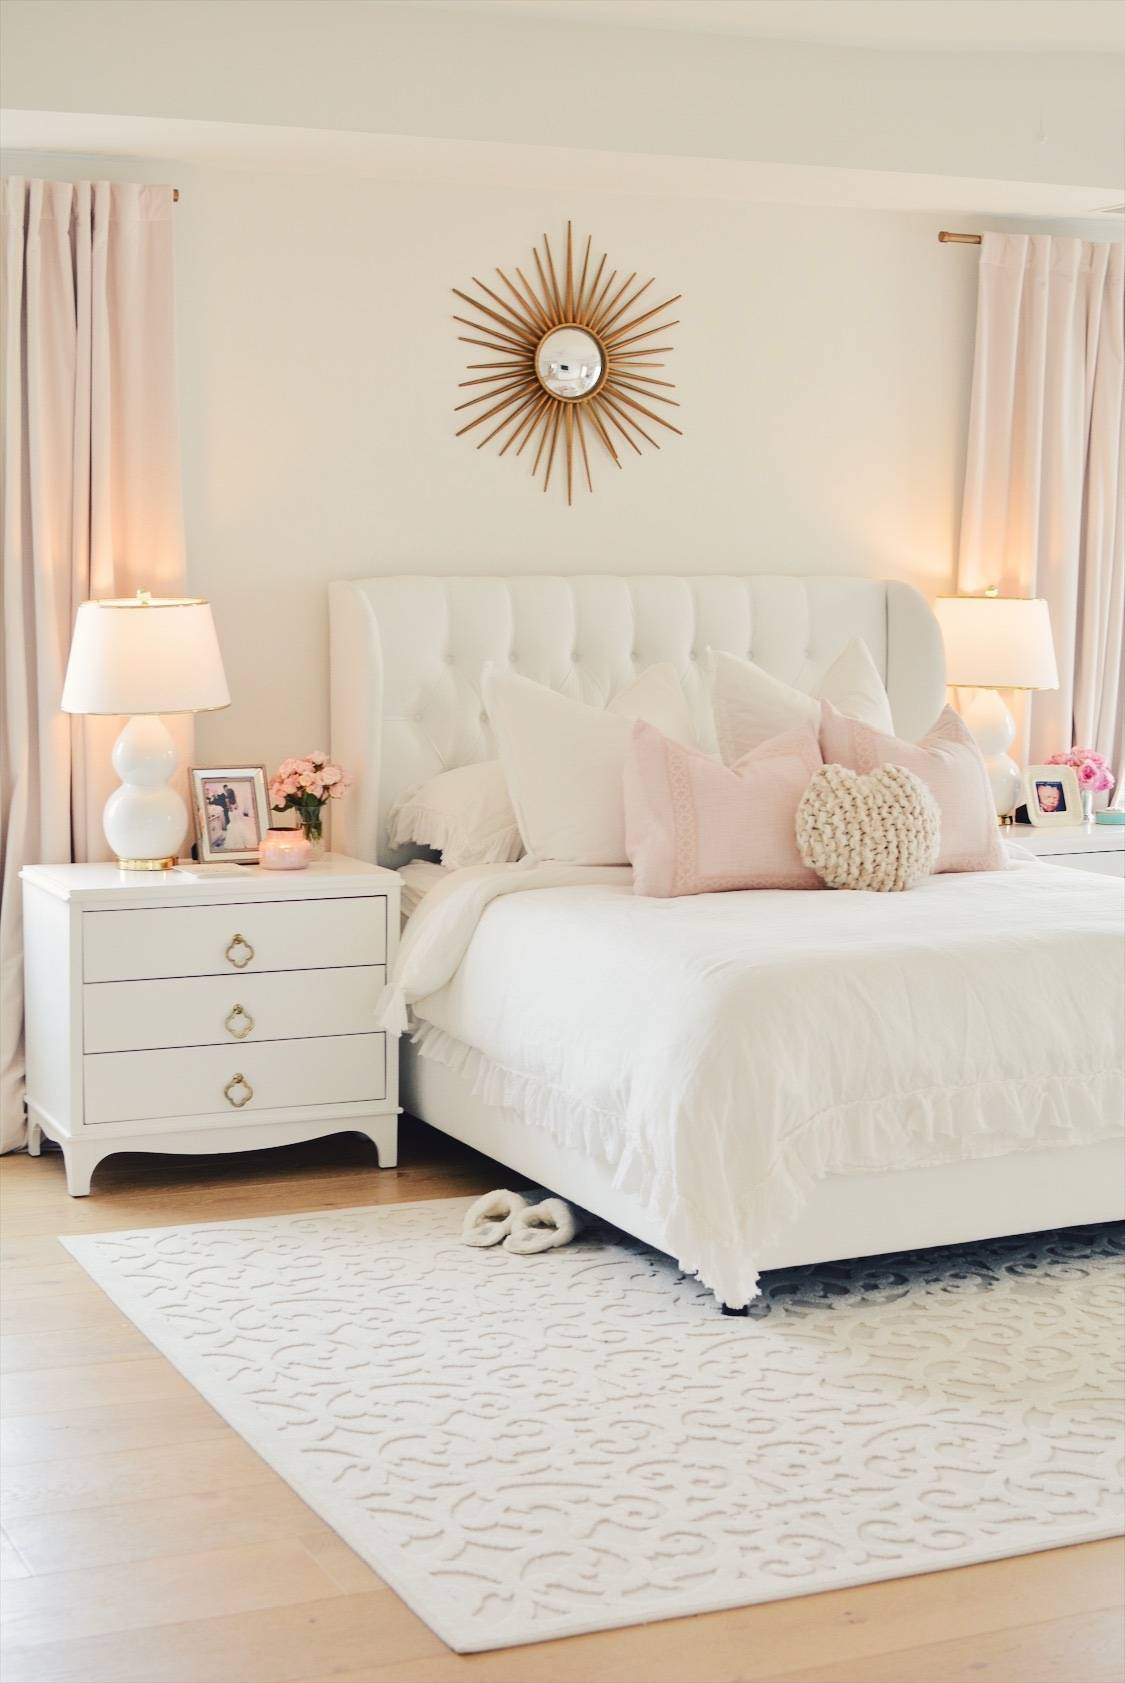 Orian Seaborn Rug Review: My New White Master Bedroom Rug ...